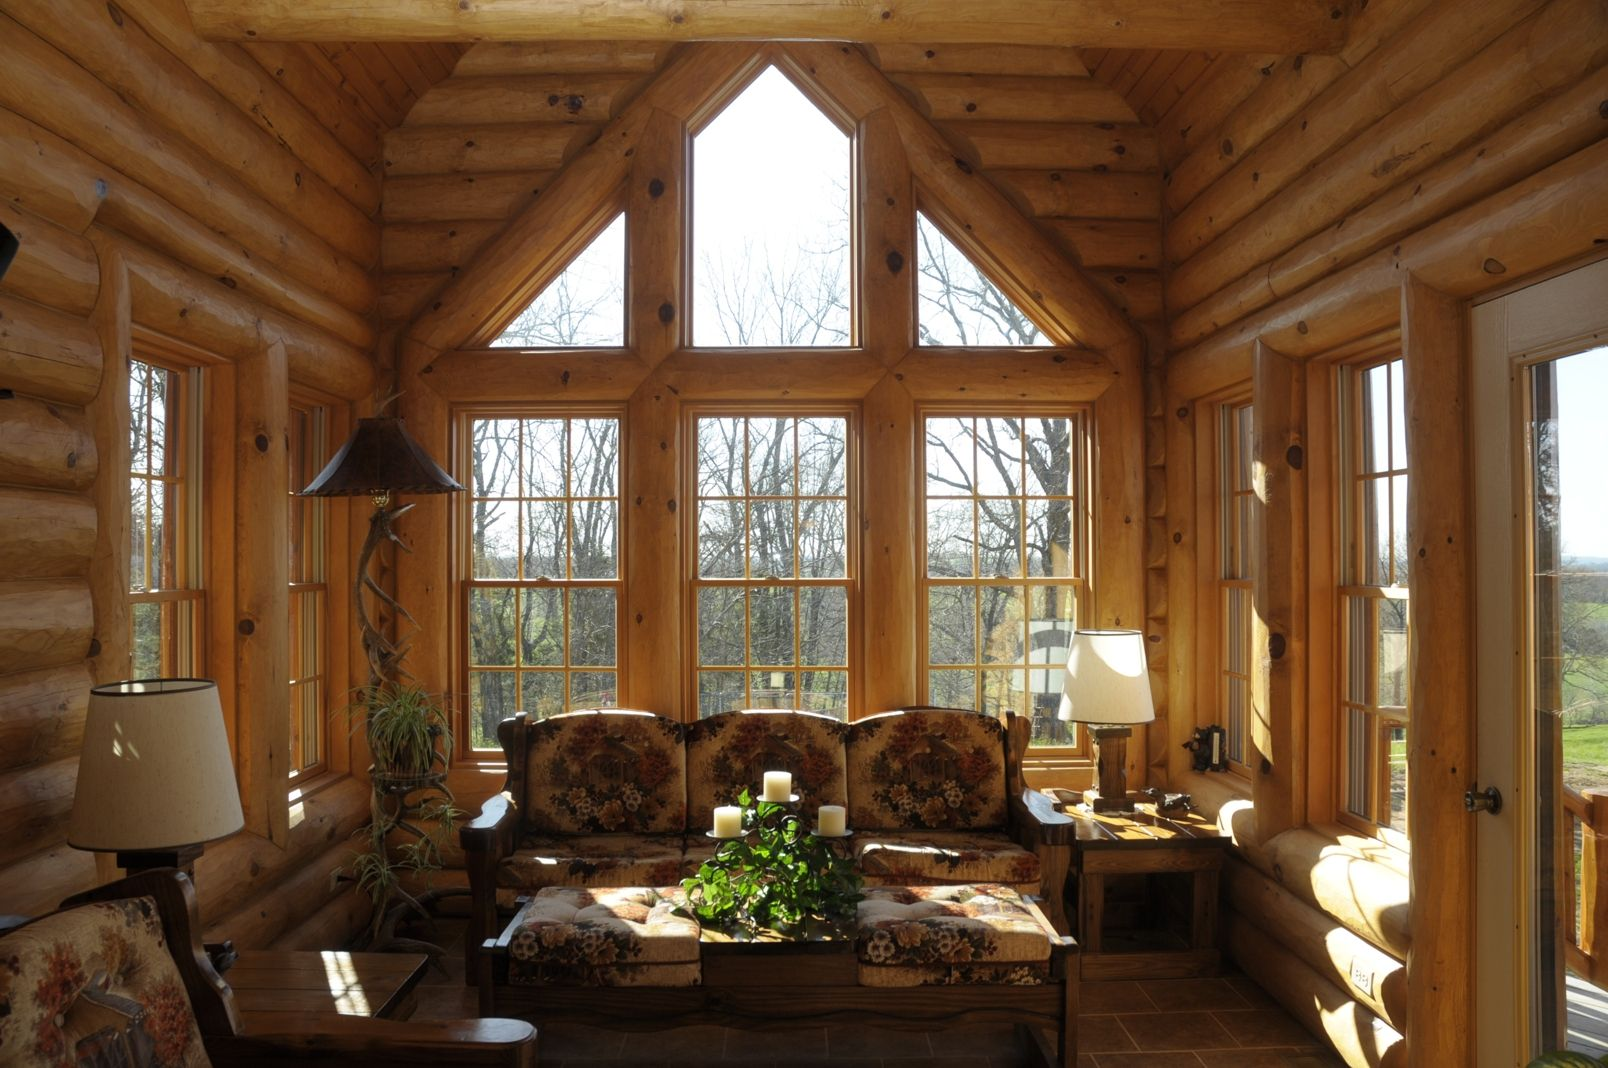 Log home photos sunrooms lofts office expedition for Log home sunrooms